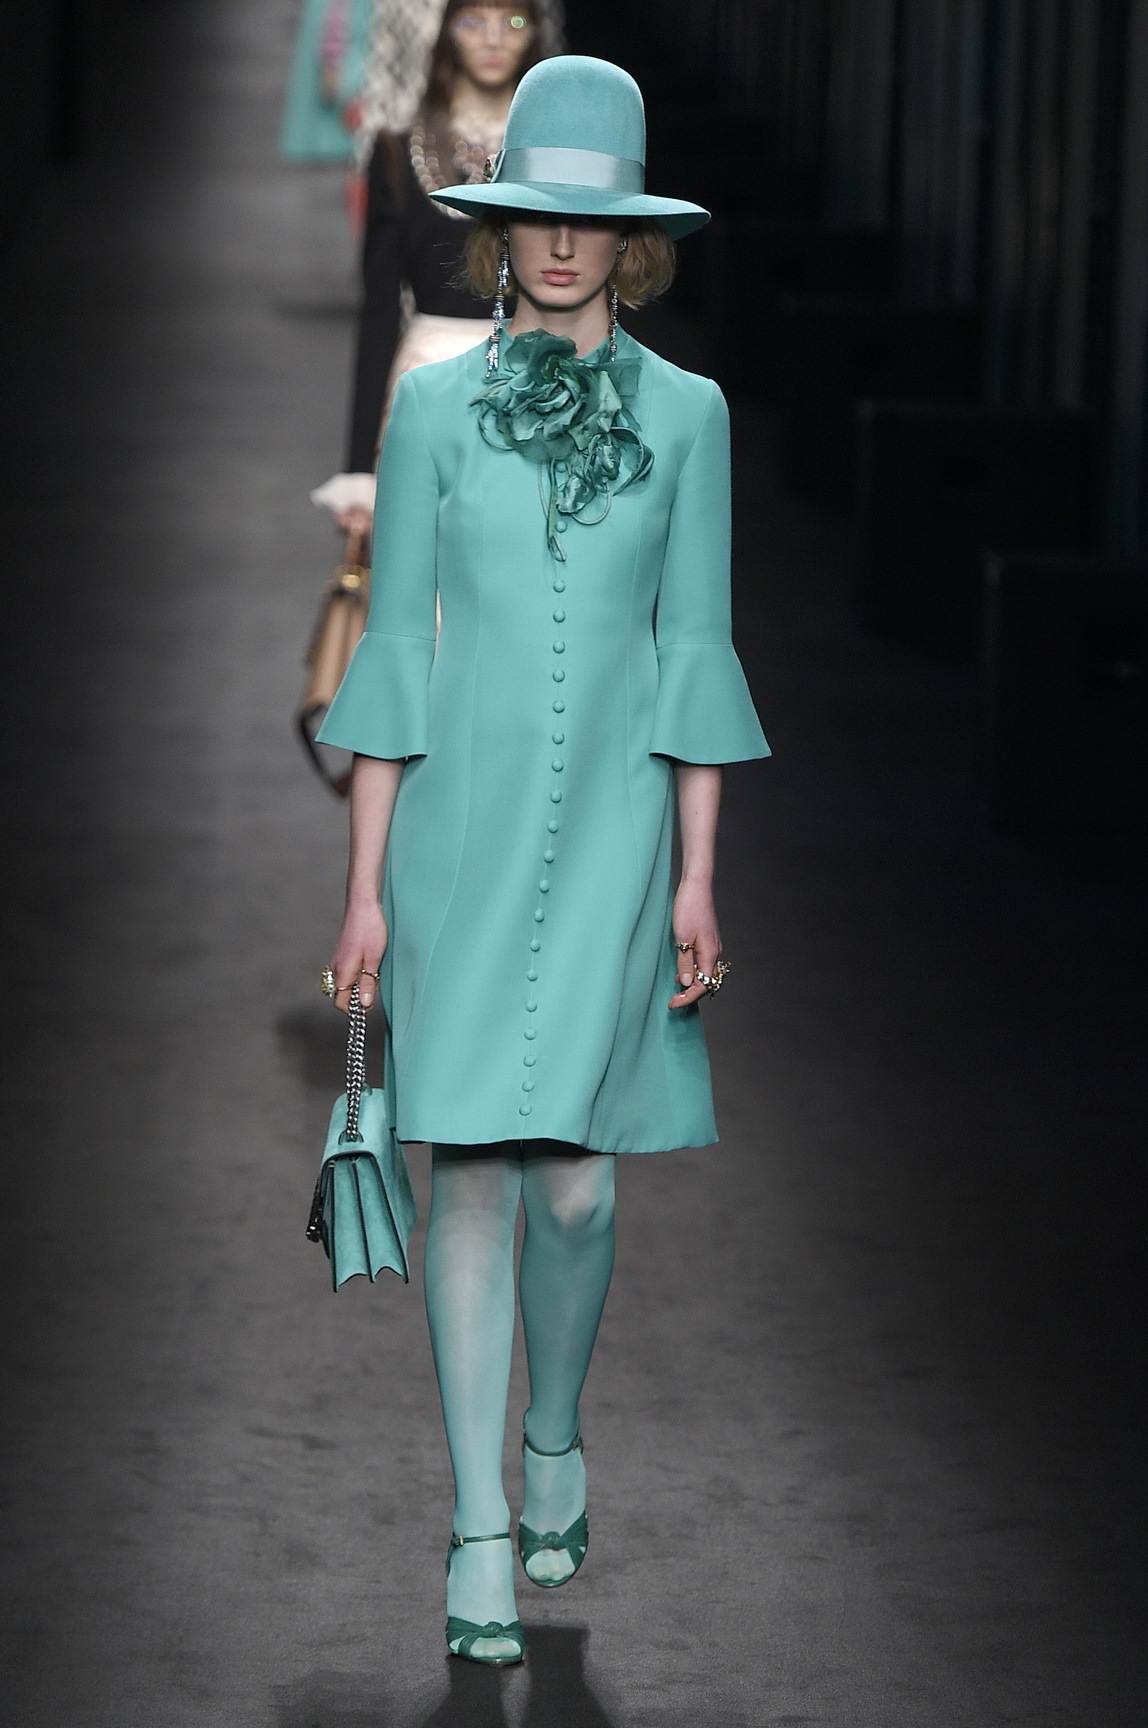 easy tiger: gucci and cavalli open milan fashion week - i-D